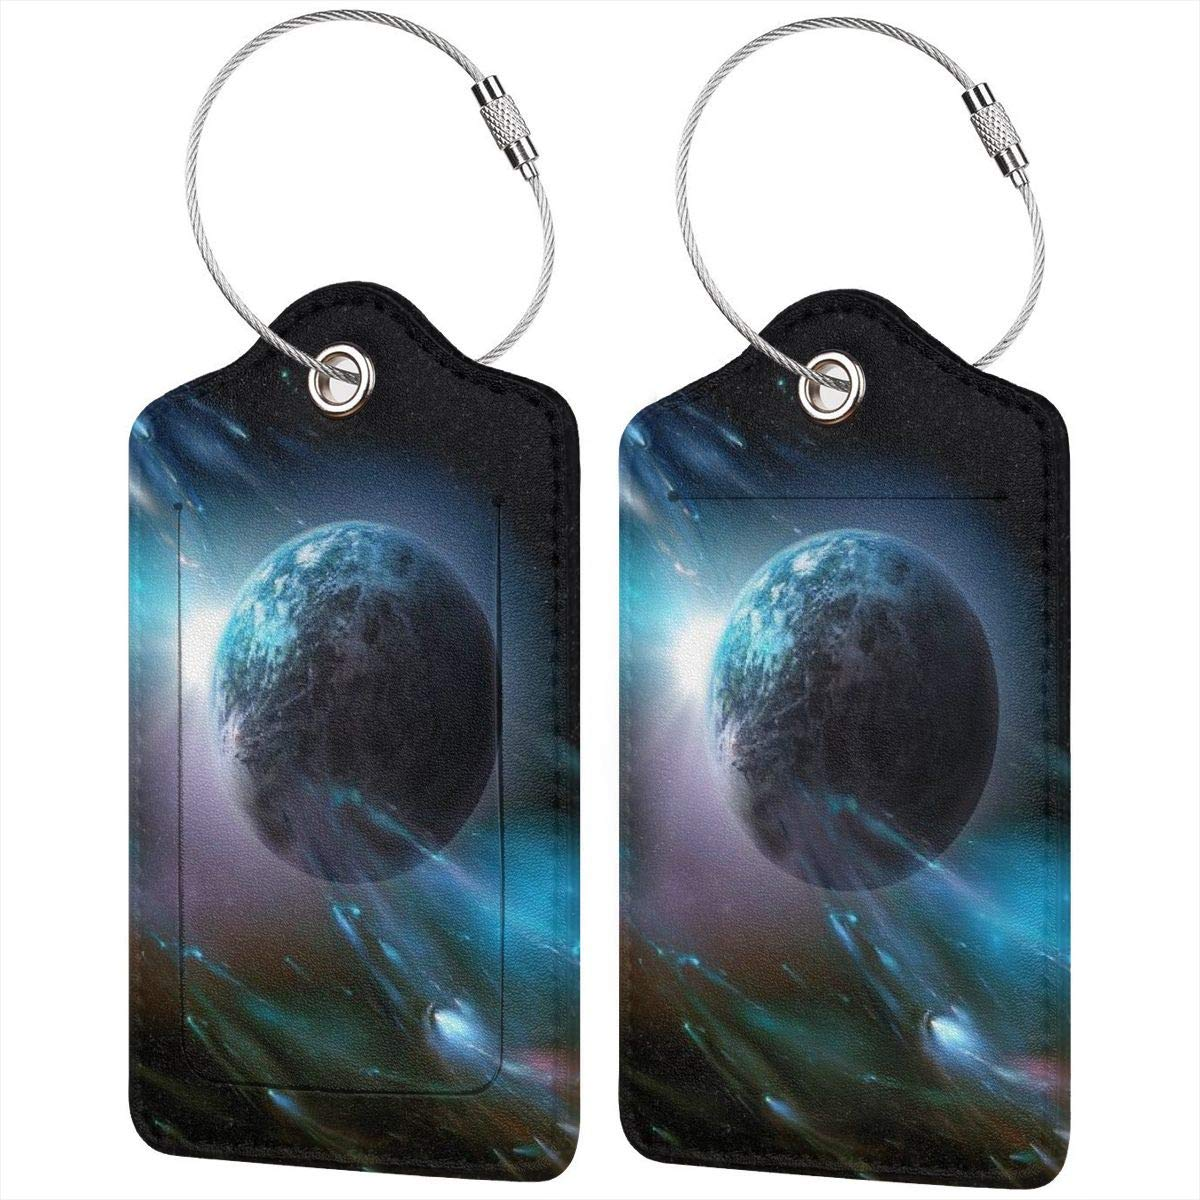 Luggage Tag Label Travel Bag Label With Privacy Cover Luggage Tag Leather Personalized Suitcase Tag Travel Accessories Outer Space Galaxy Universe 4